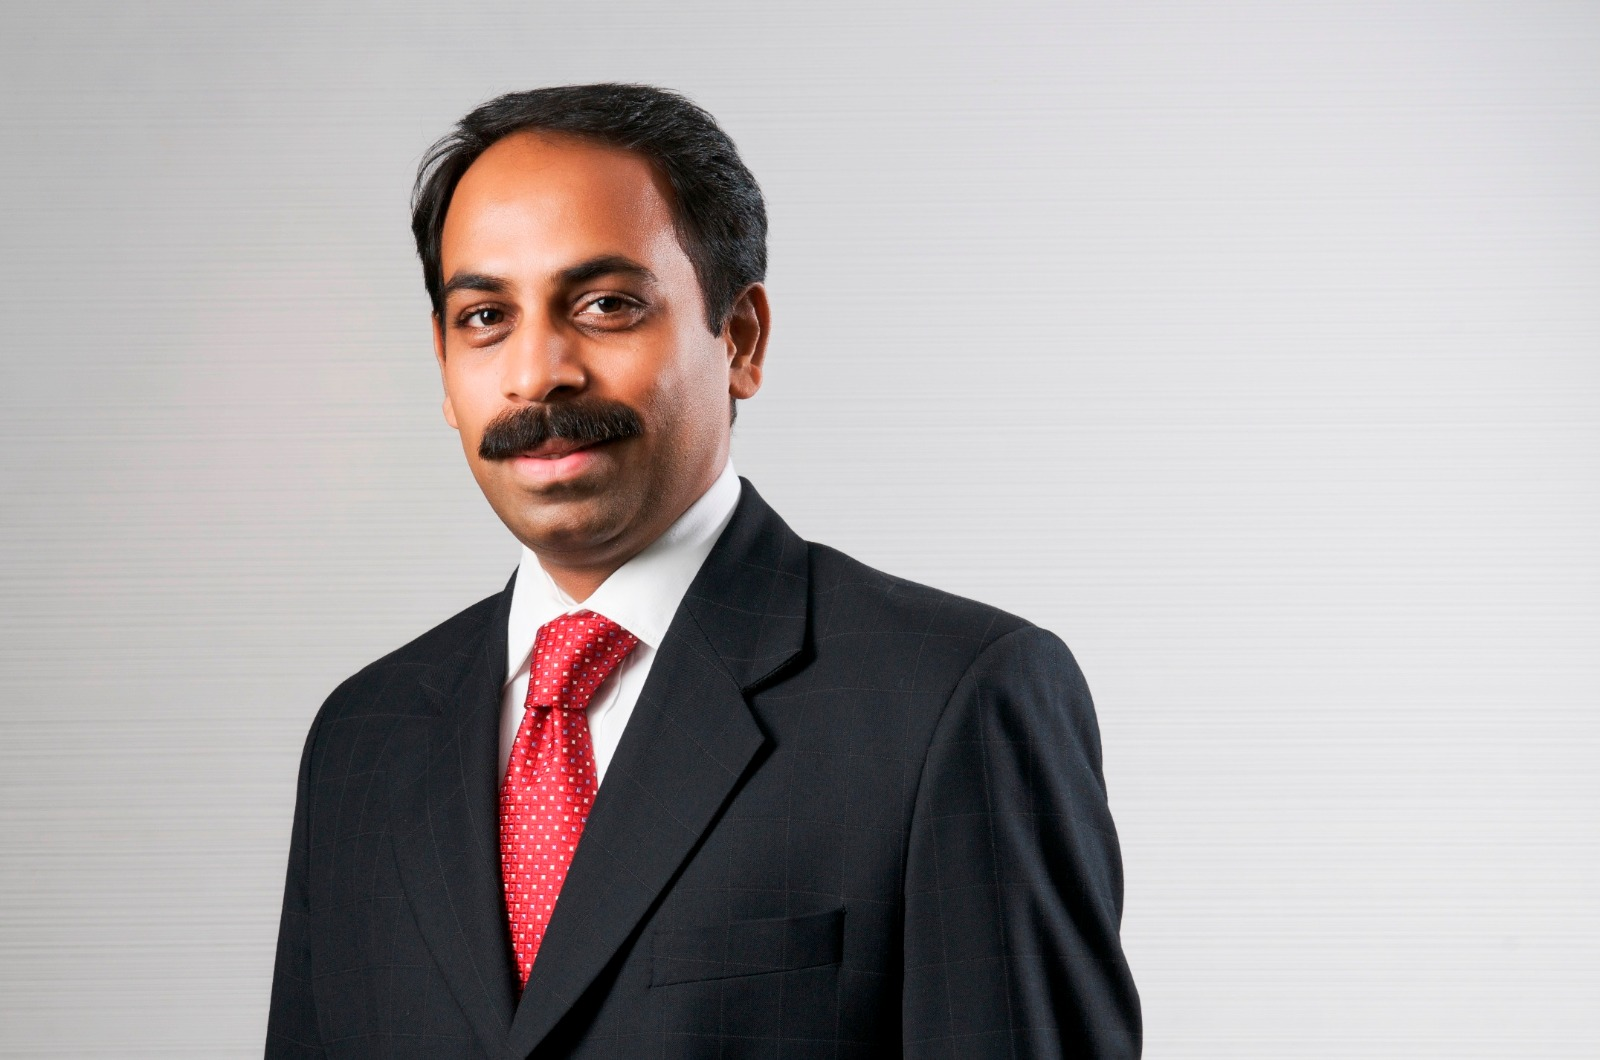 Dattu Kompella, managing director in Asia for FICO